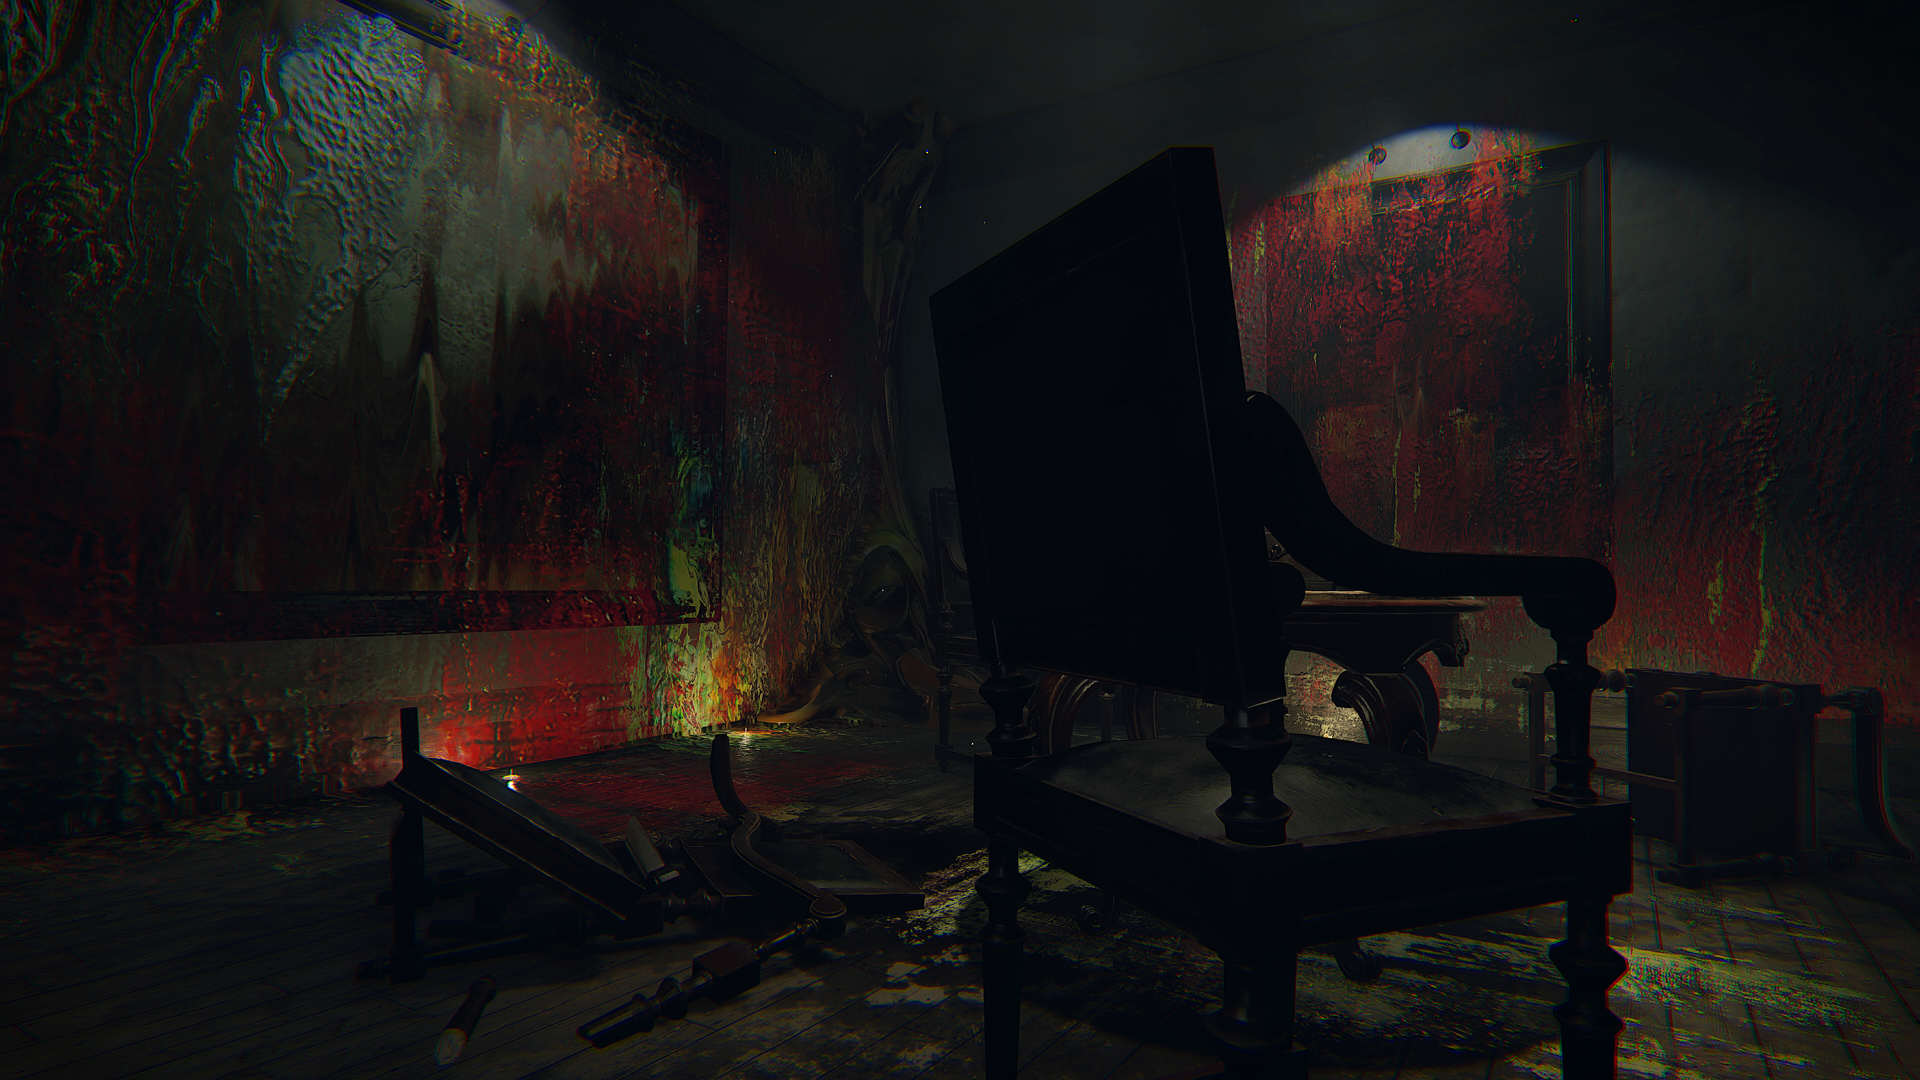 Layers Of Fear Is Isolating, Tense And Unashamedly Terrifying pu28dd2c7955ce926456240b2ff0100bde 1446046473 7939764 screenshot original